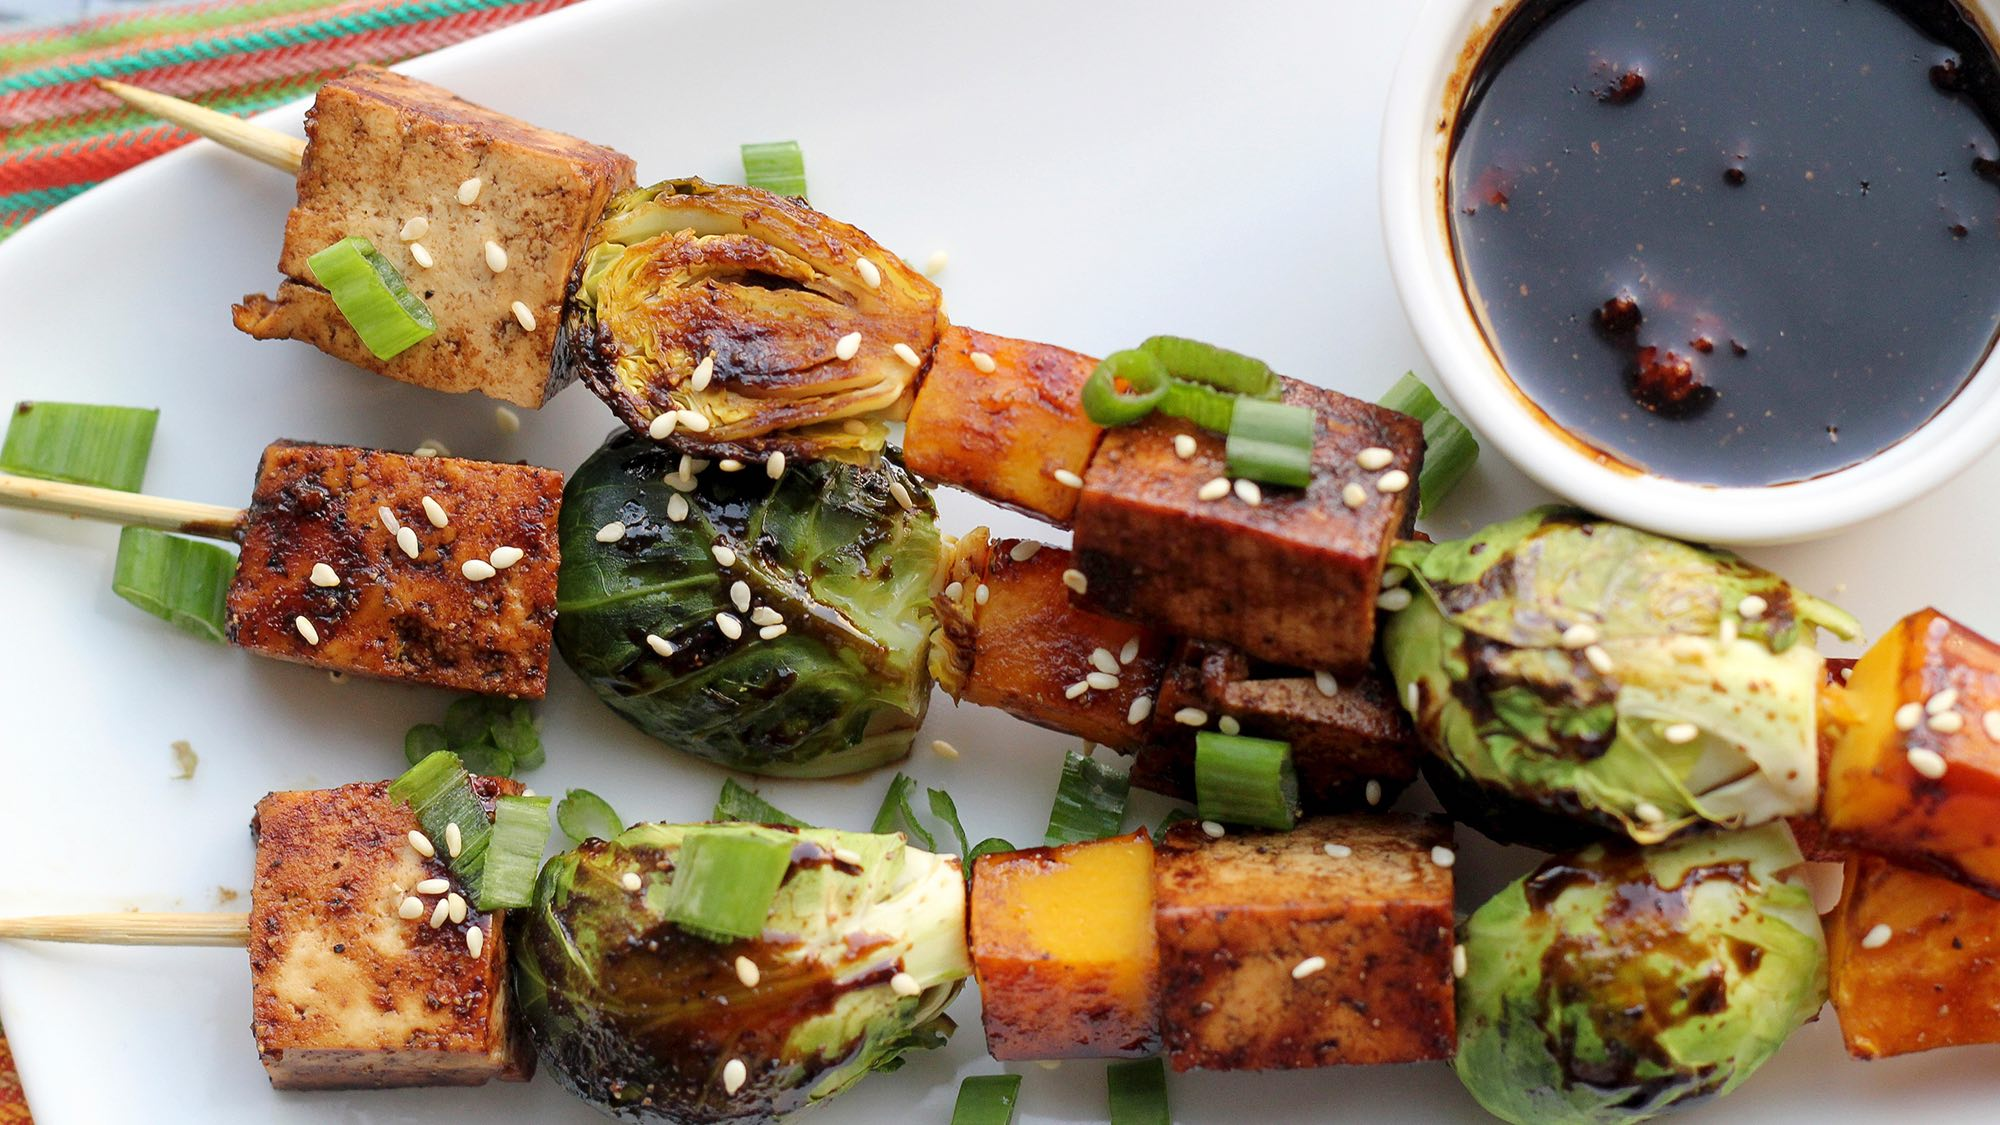 McCormick Tofu Butternut Squash and Brussels Sprouts Skewers